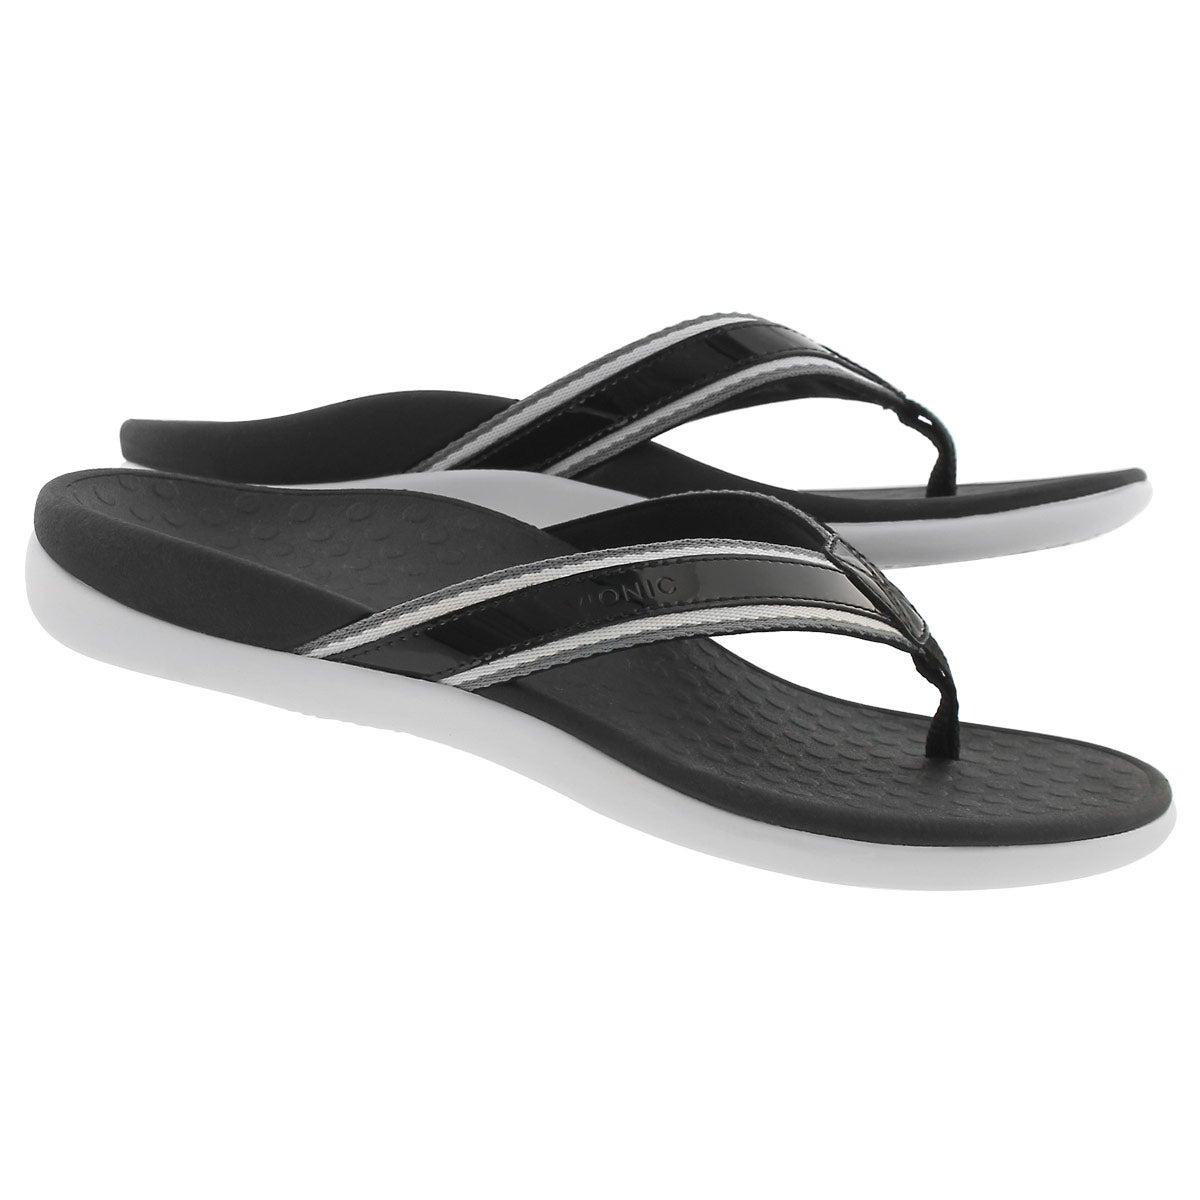 Lds TideSport blk arch support thng sndl